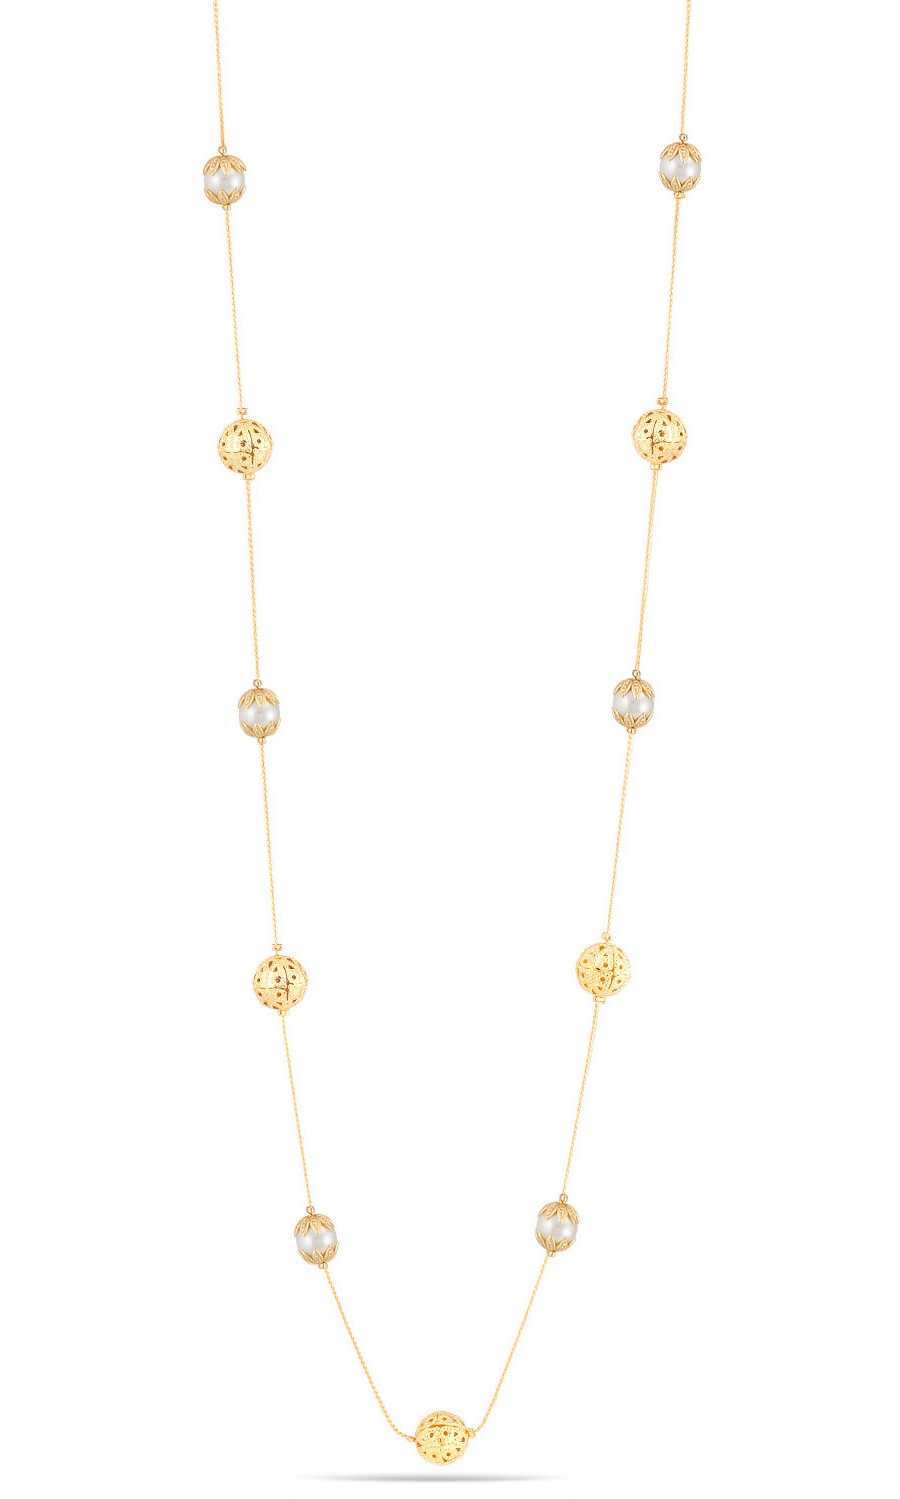 TAZZA GOLD-TONE CREAM FAUX PEARL AND CRYSTAL JEWELRY